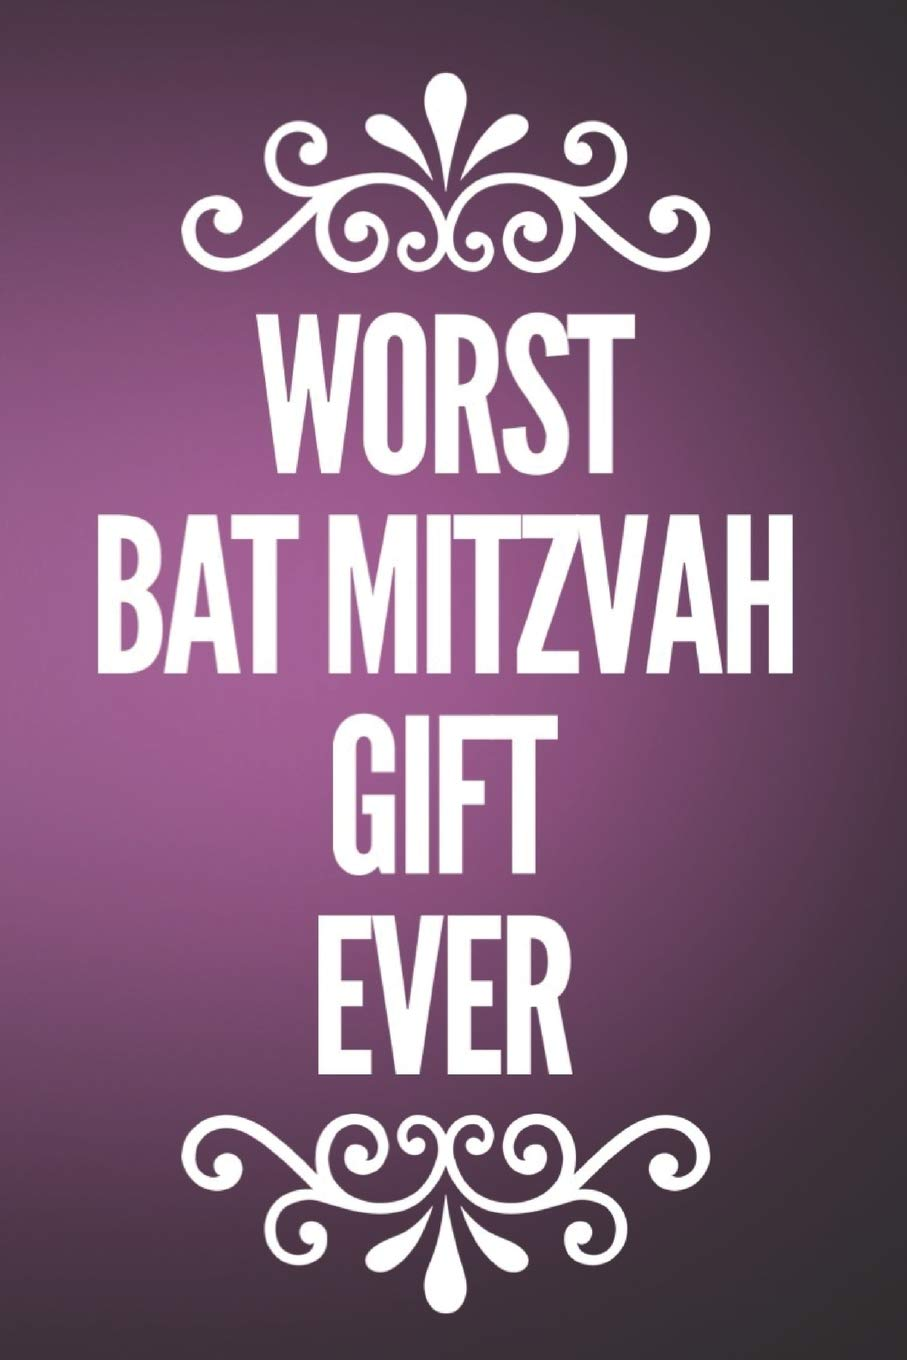 Worst Bat Mitzvah Gift Ever: 110-Page Blank Lined Journal Bat Mitzvah Gag Gift Idea Paperback – February 2, 2019